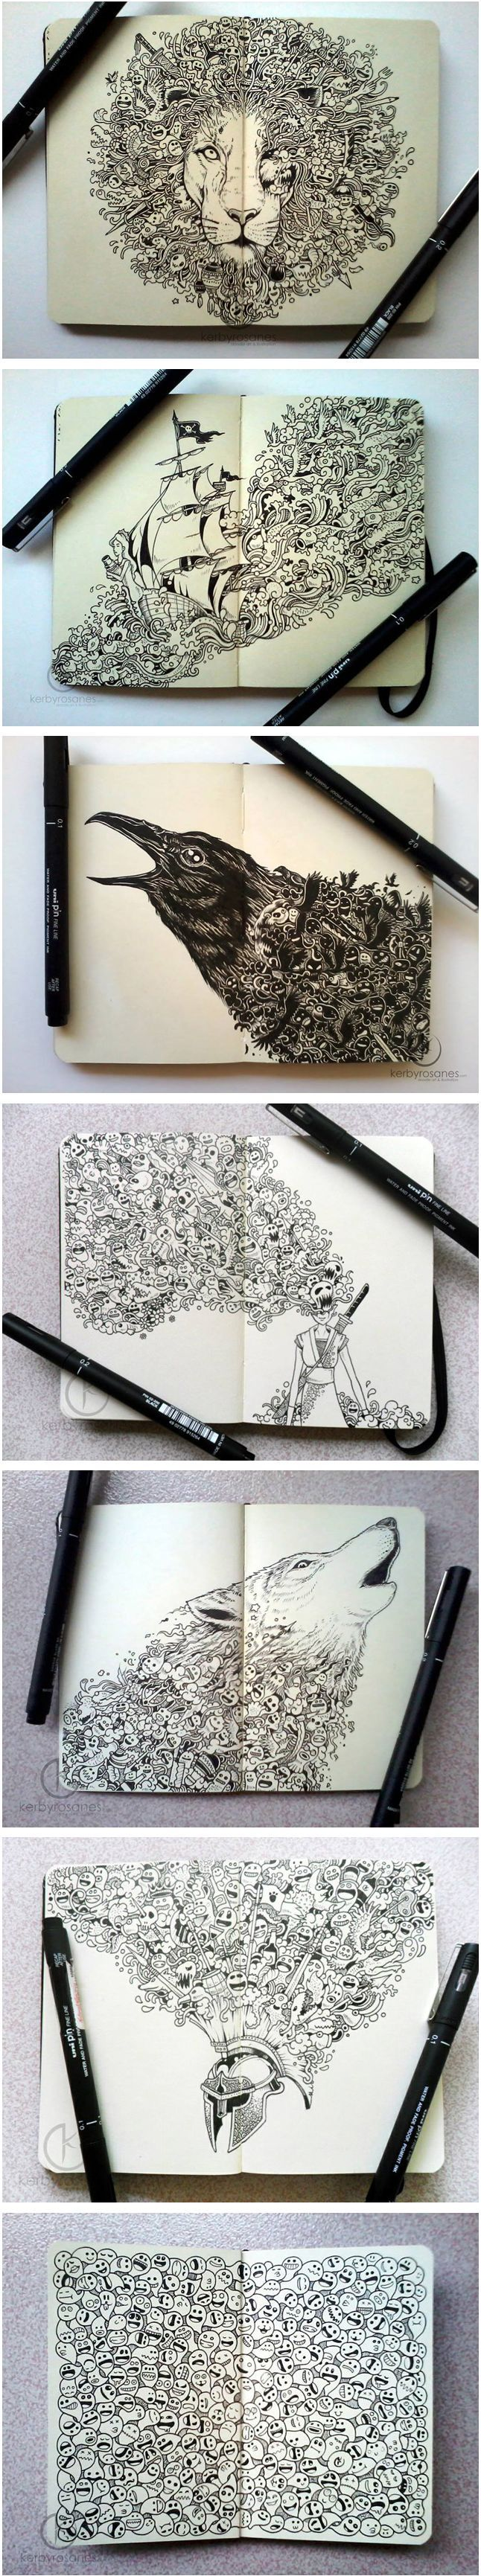 Moleskine Doodles by Kerby Rosanes. Drawings on a notebook